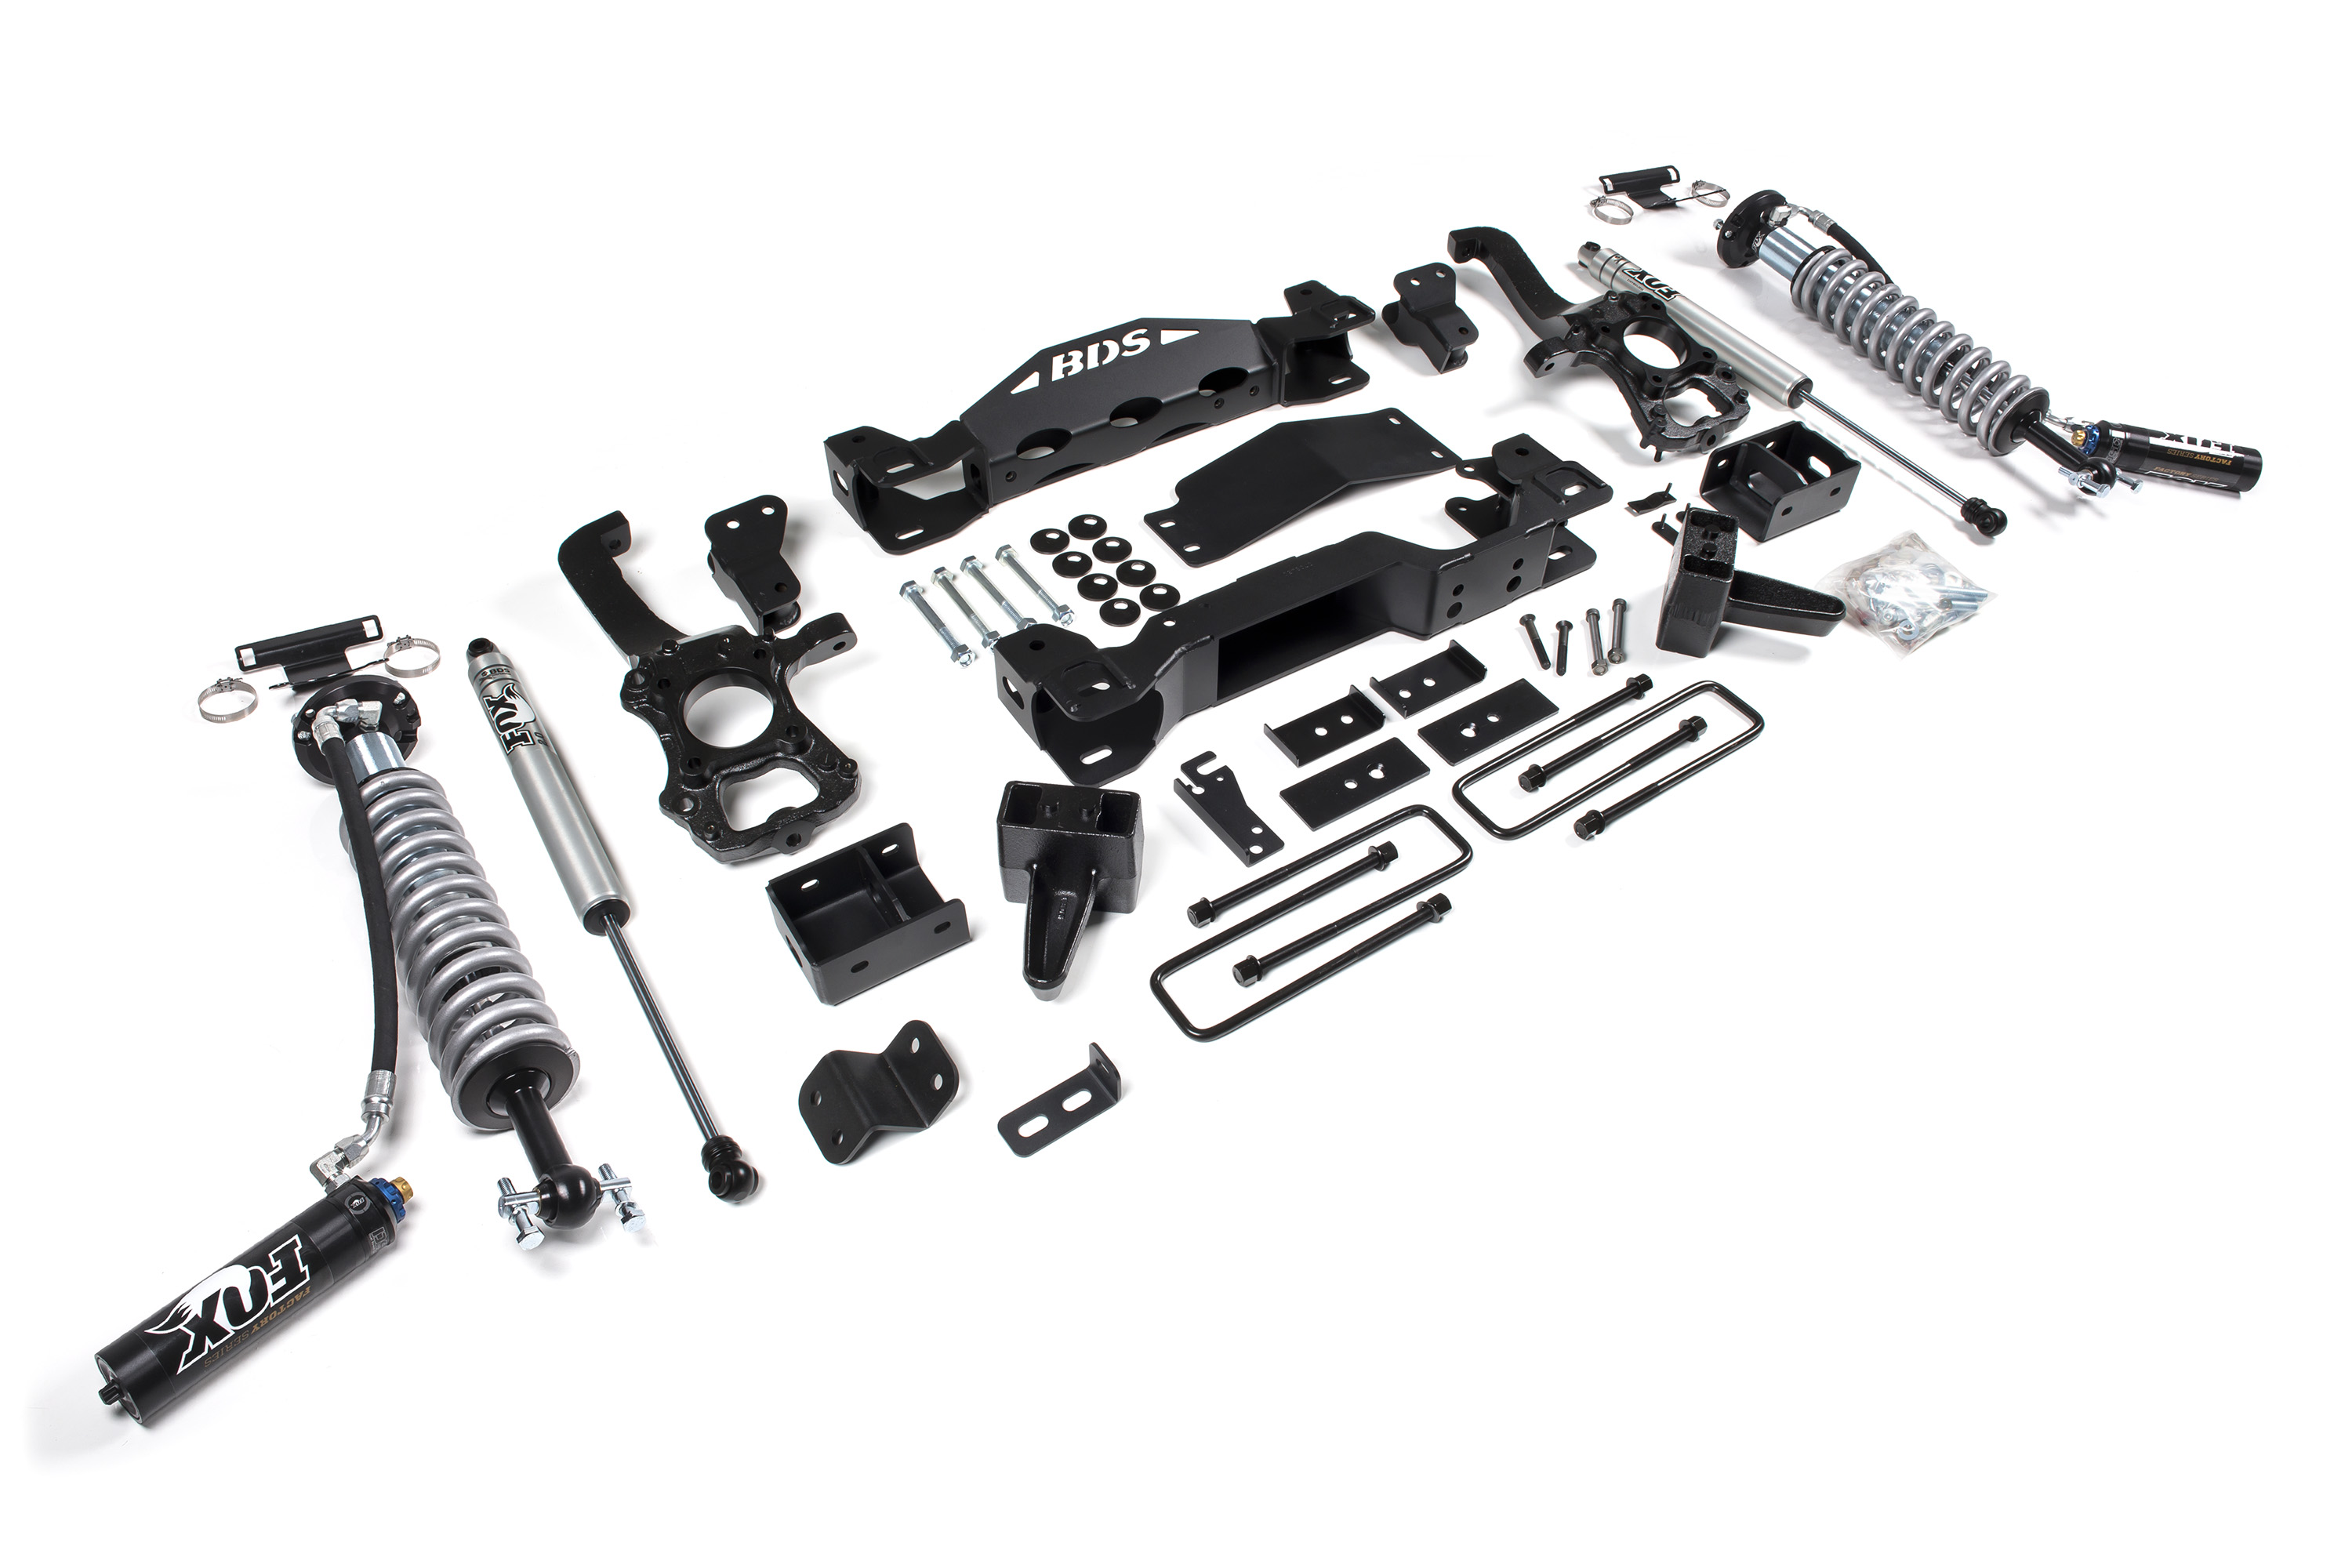 6 Dsc Coilover Systems For Ford F150 By Bds Suspension